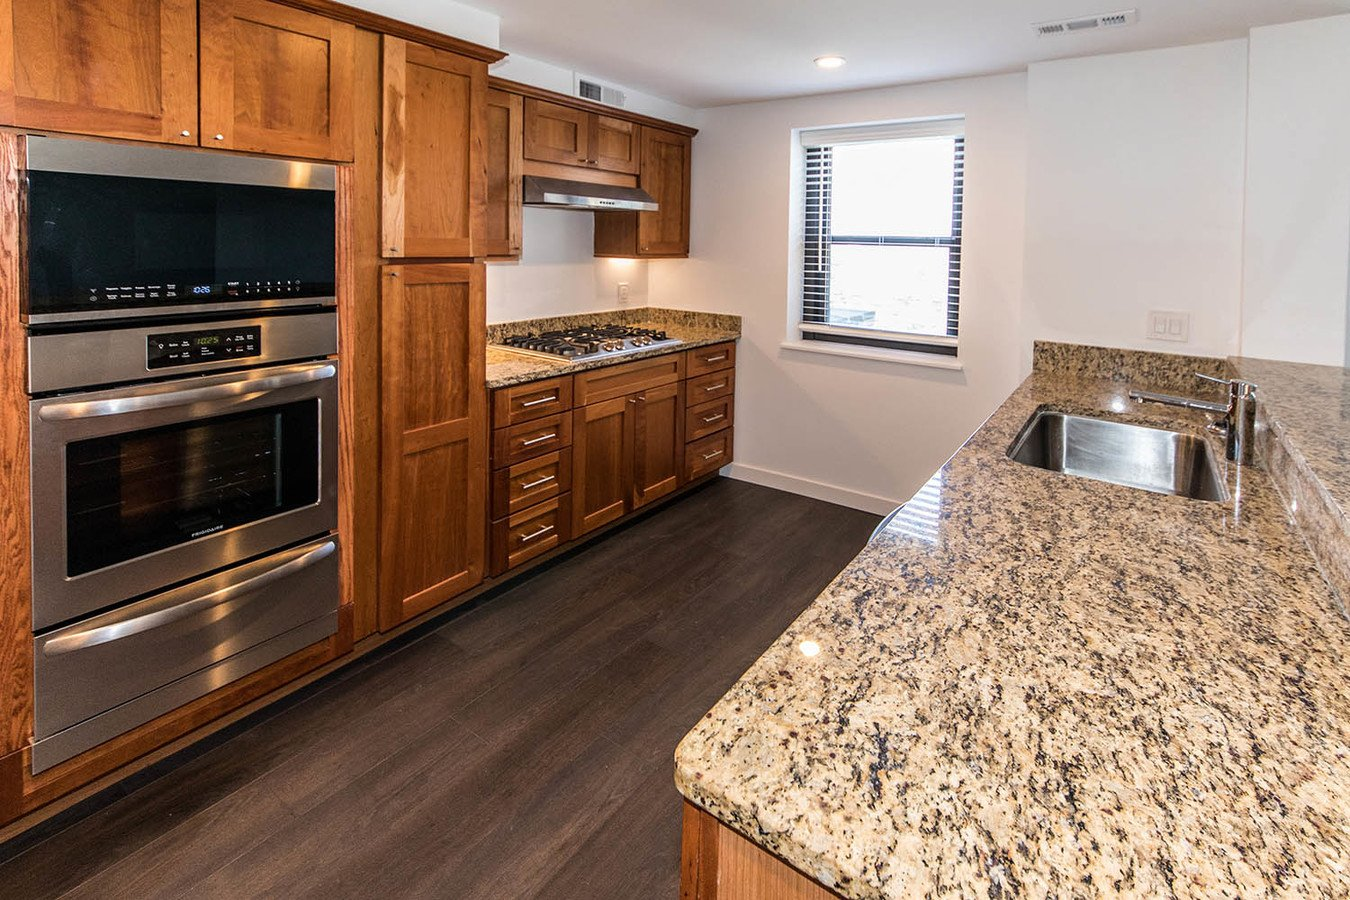 3 Bedrooms 1 Bathroom Apartment for rent at Parc Frontenac in St Louis, MO